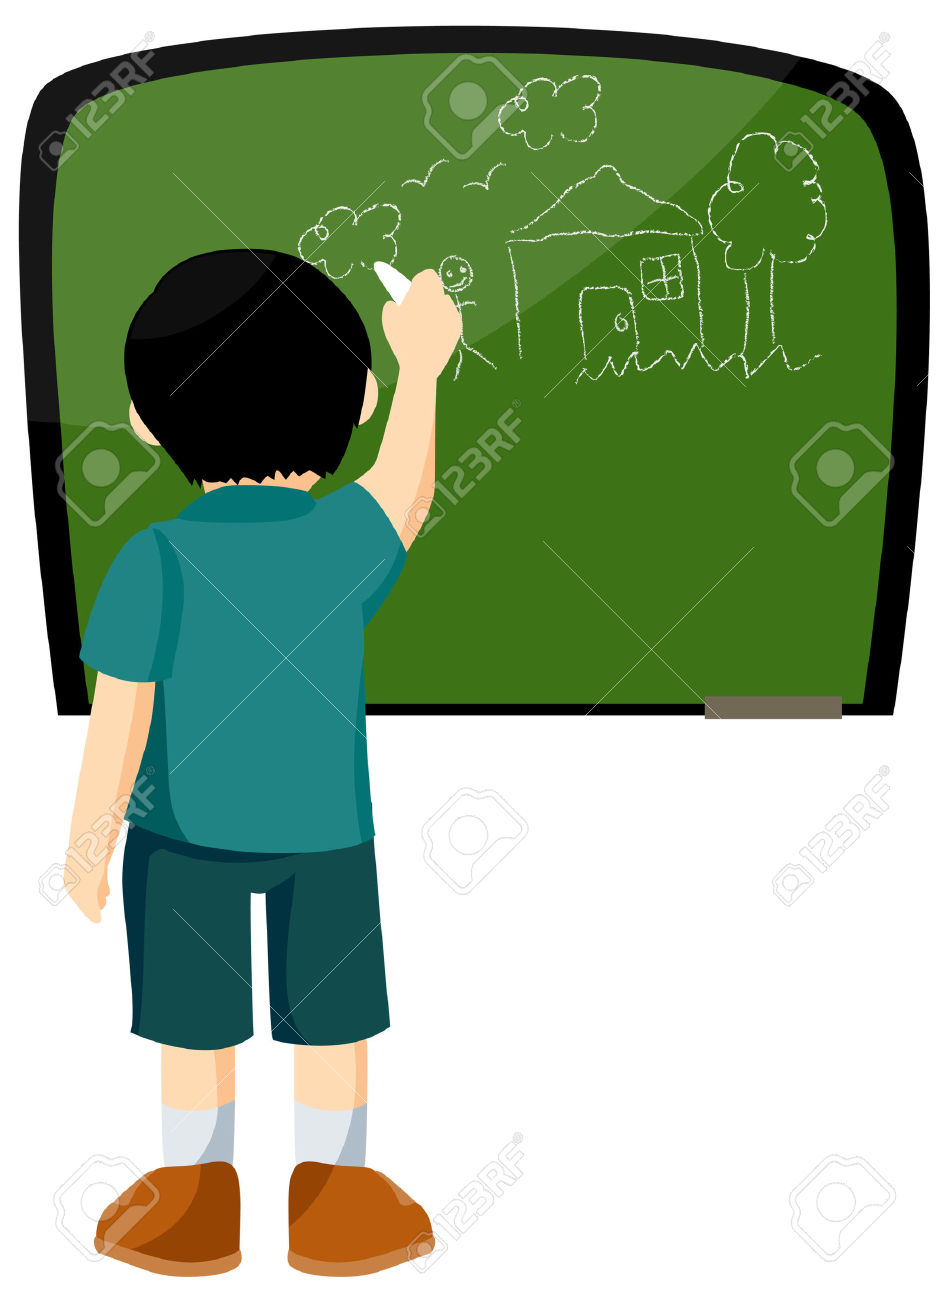 949x1300 Blackboard Clipart Drawing Board